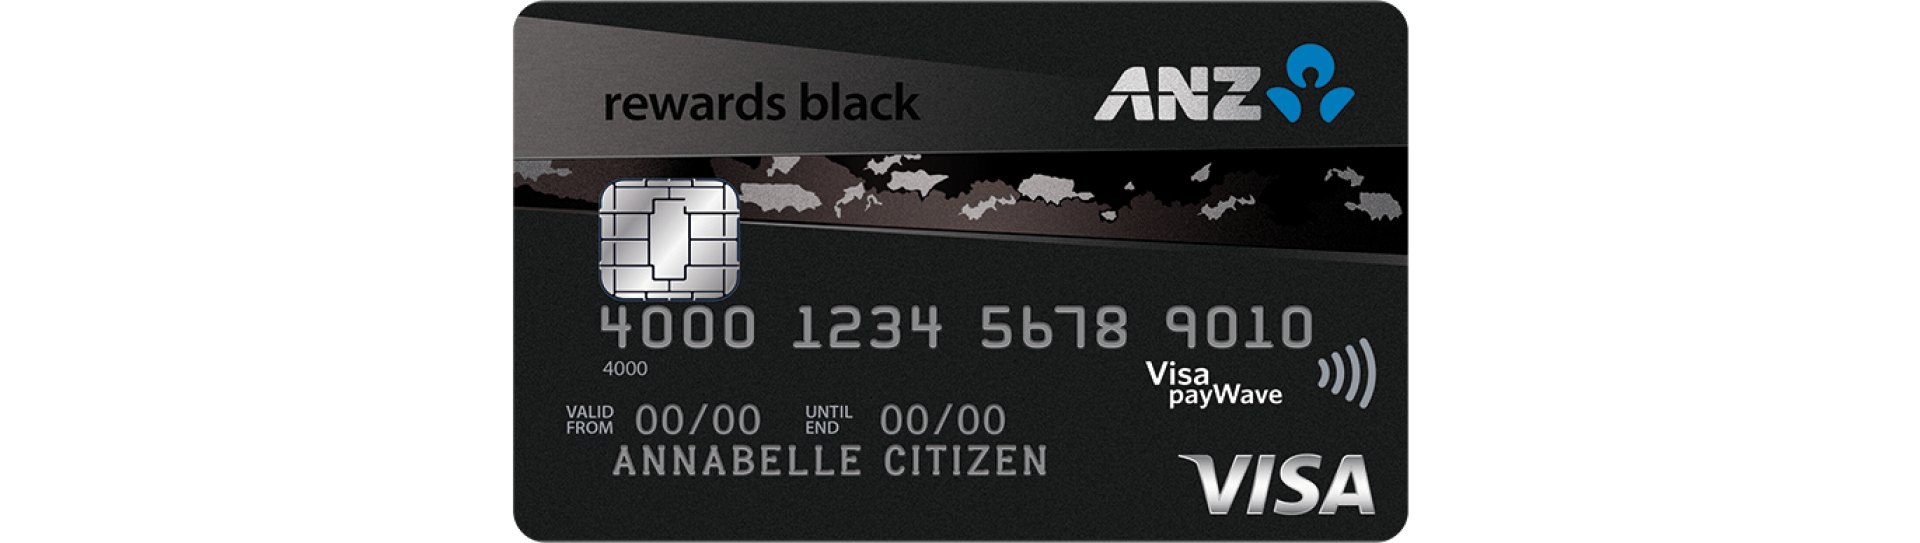 Frequent Flyer credit cards | ANZ